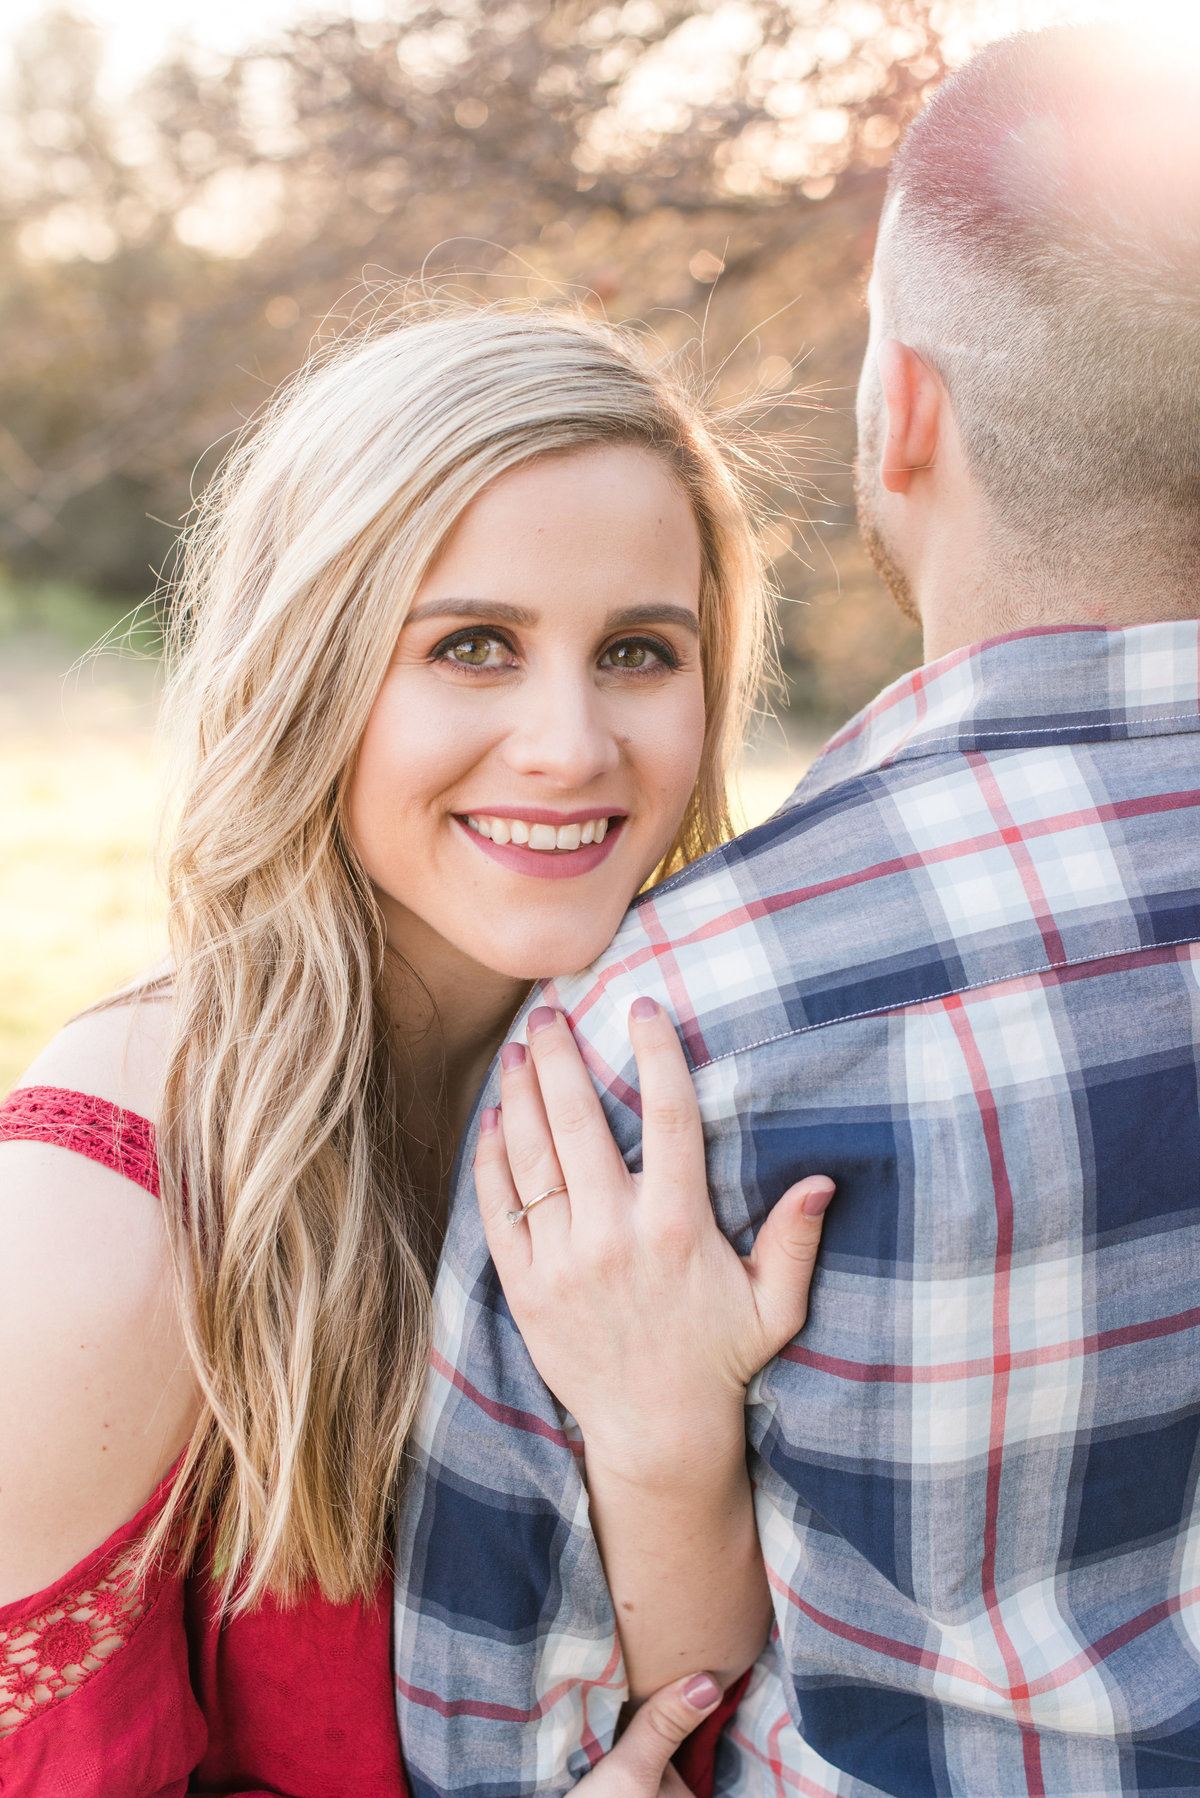 Sacramento Engagement | Kylie Compton Photography 2